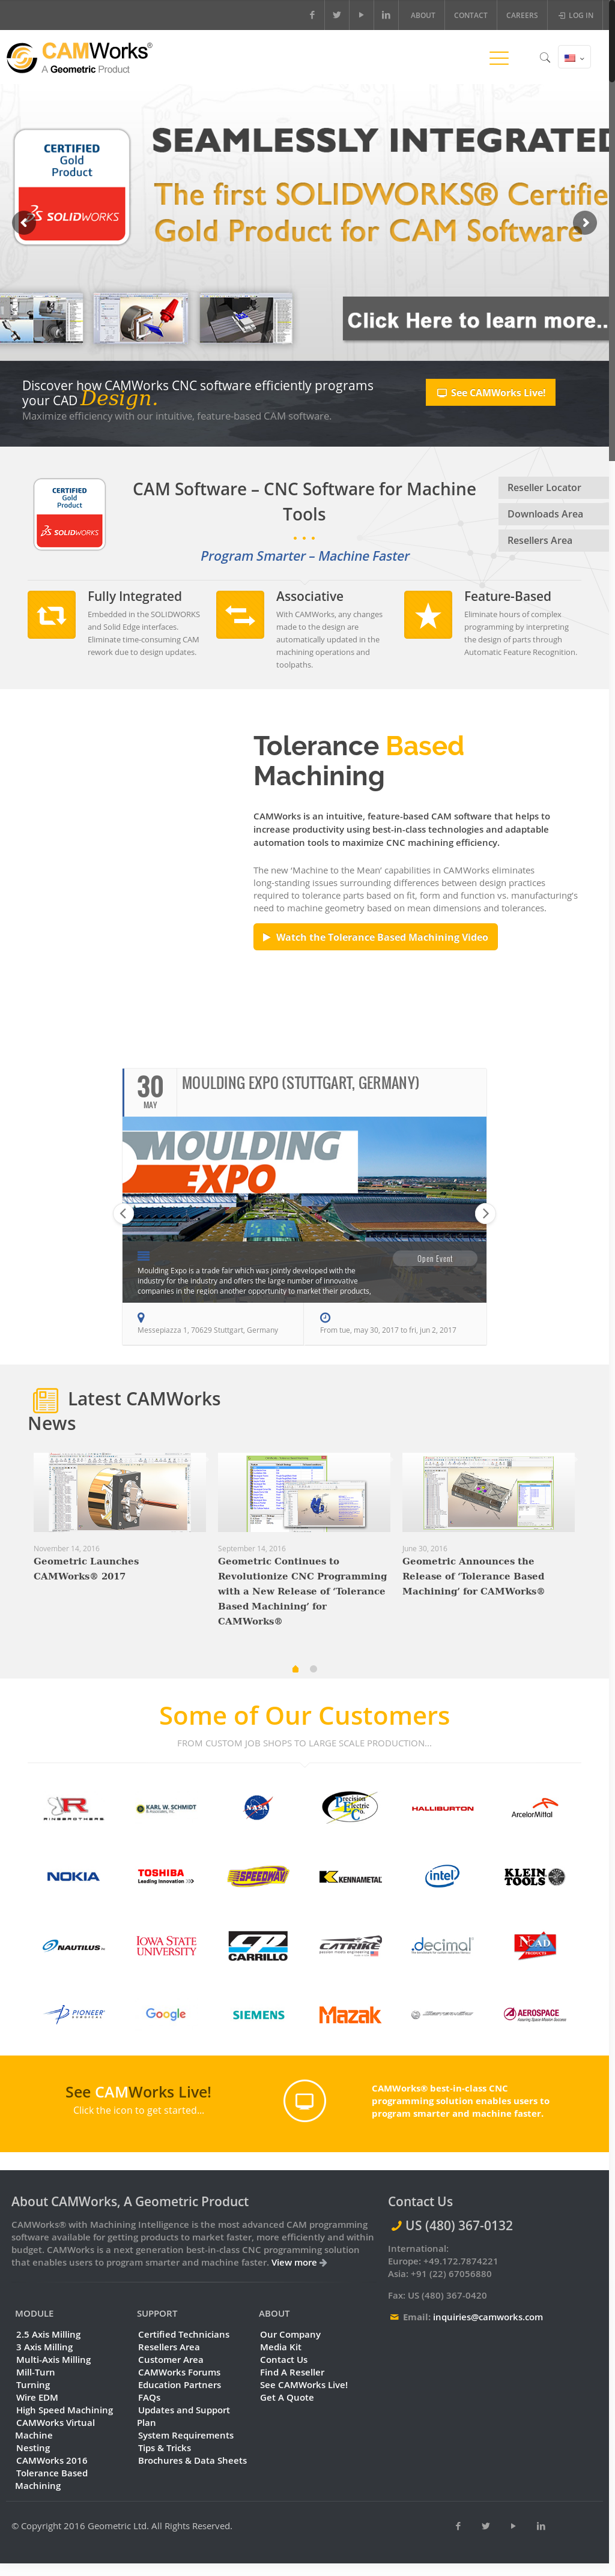 CAMWorks Competitors, Revenue and Employees - Owler Company Profile